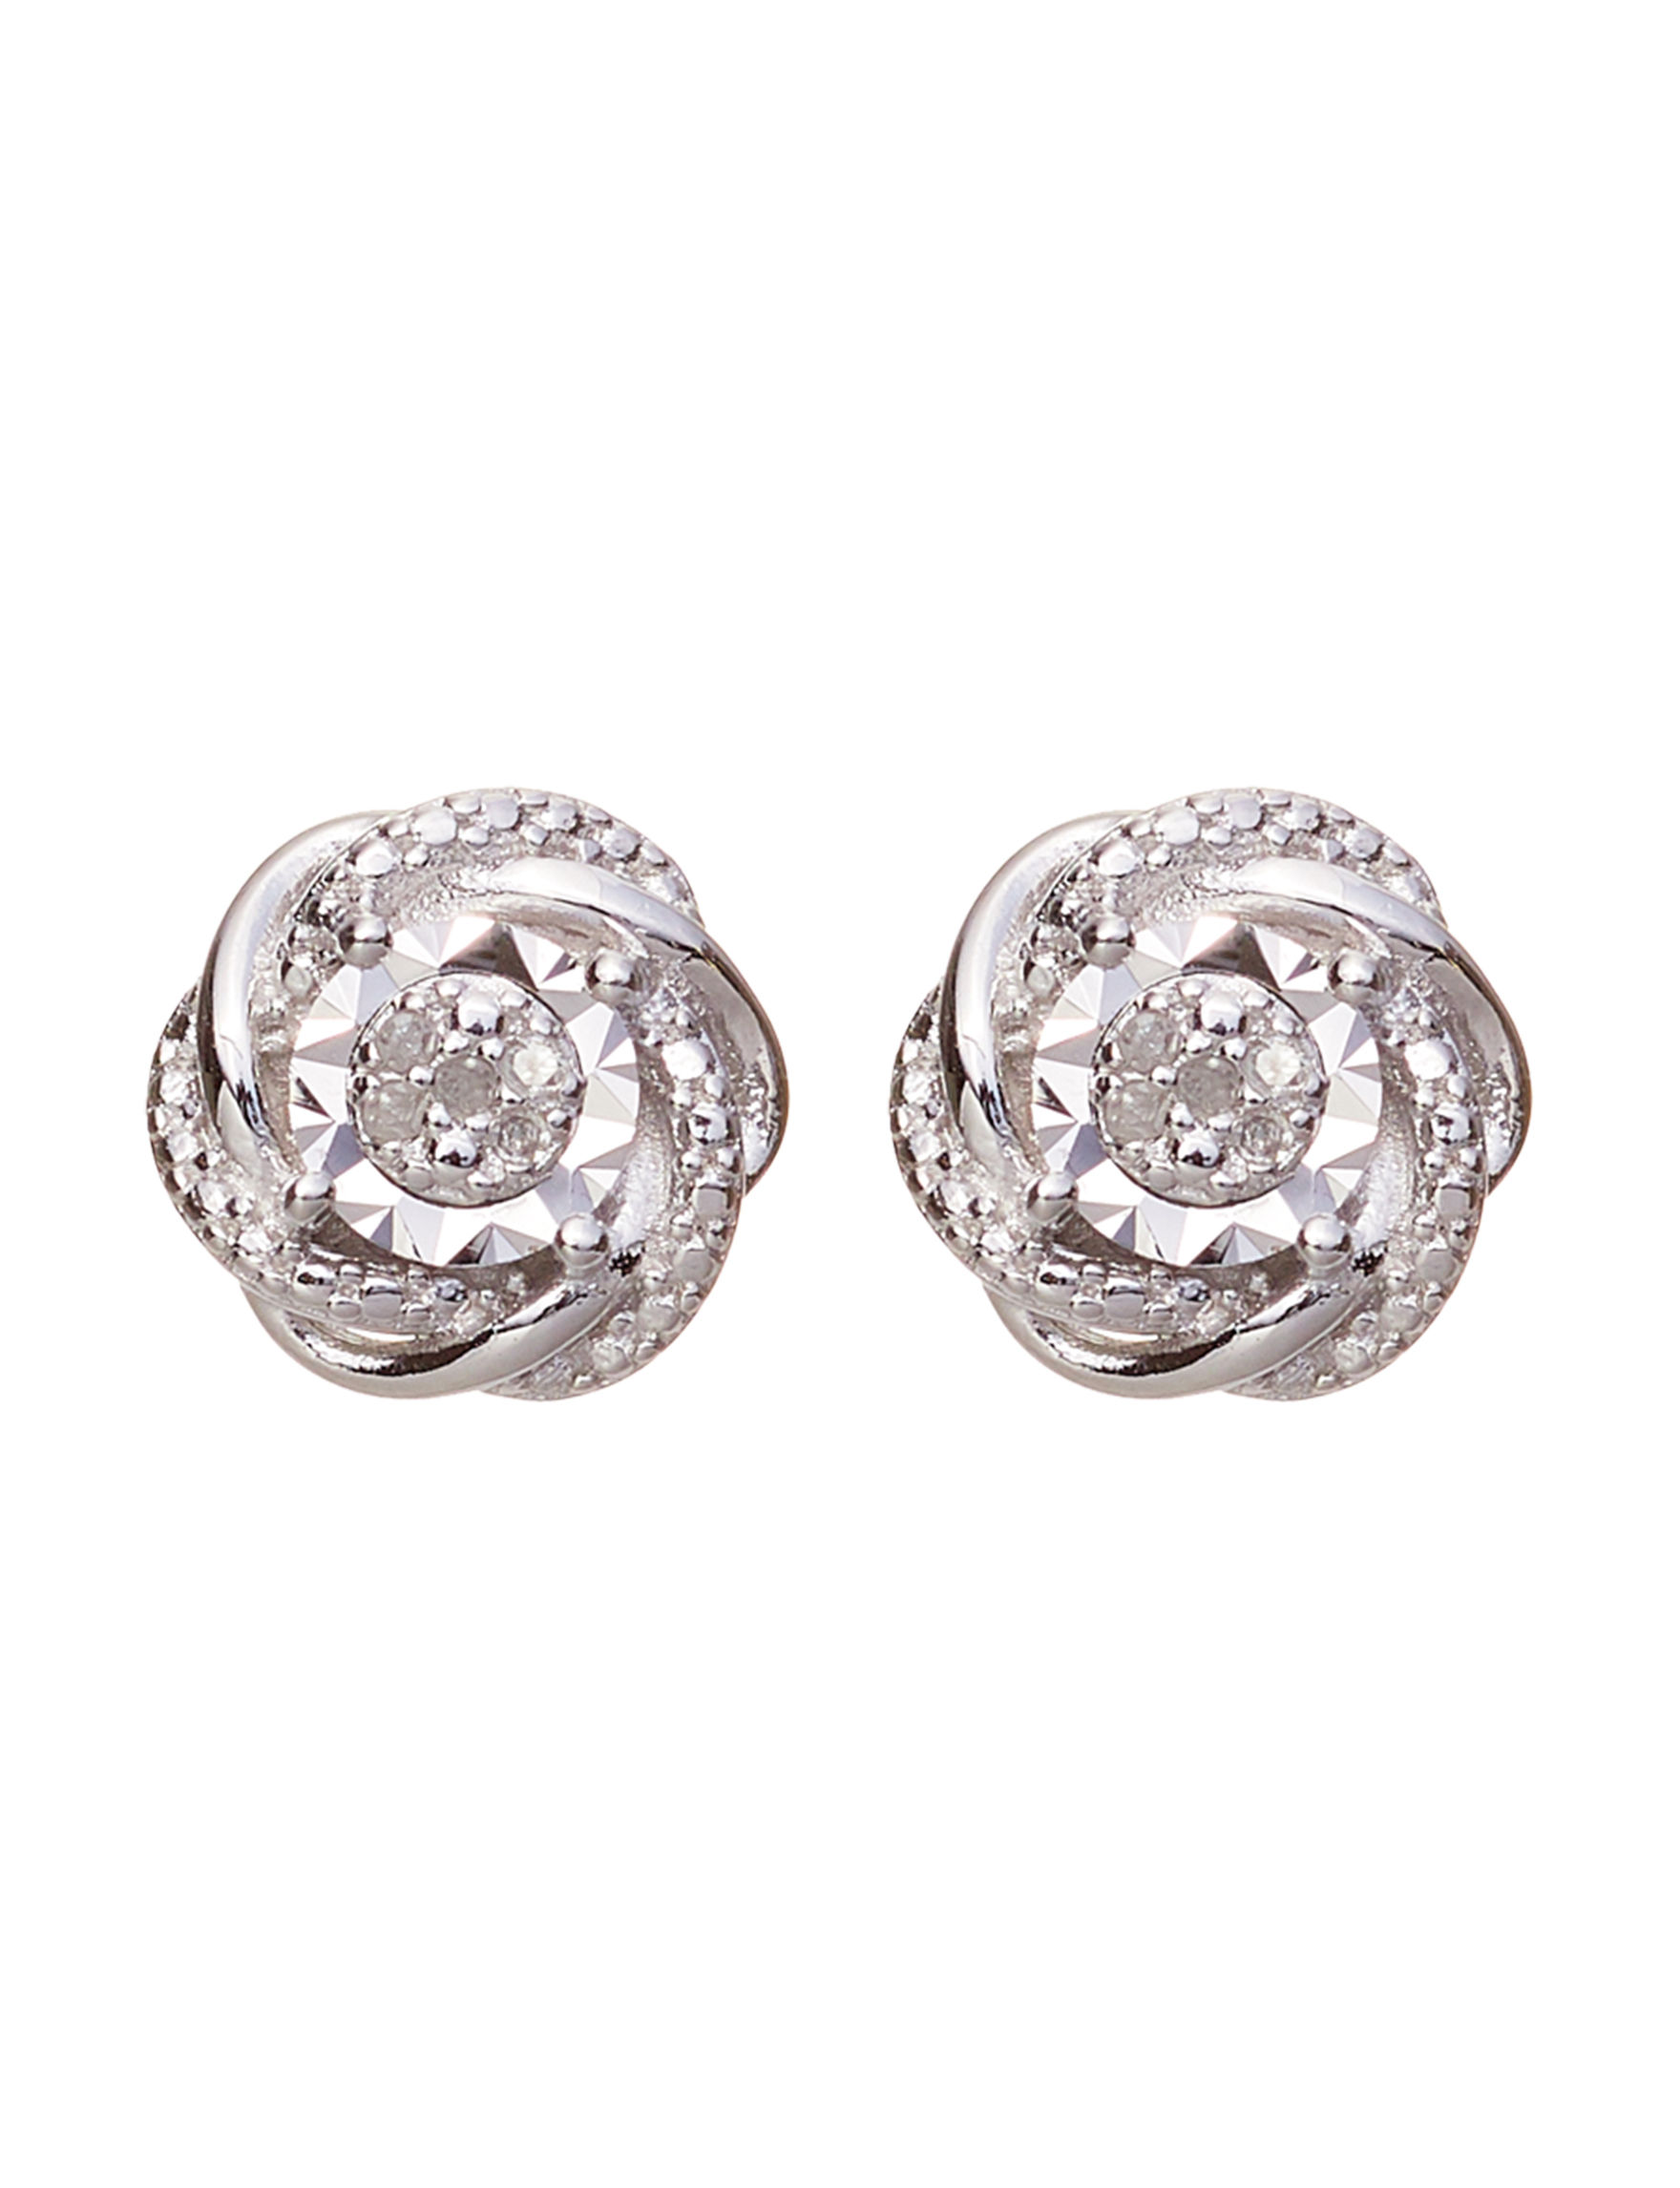 Marsala Silver Studs Earrings Fine Jewelry